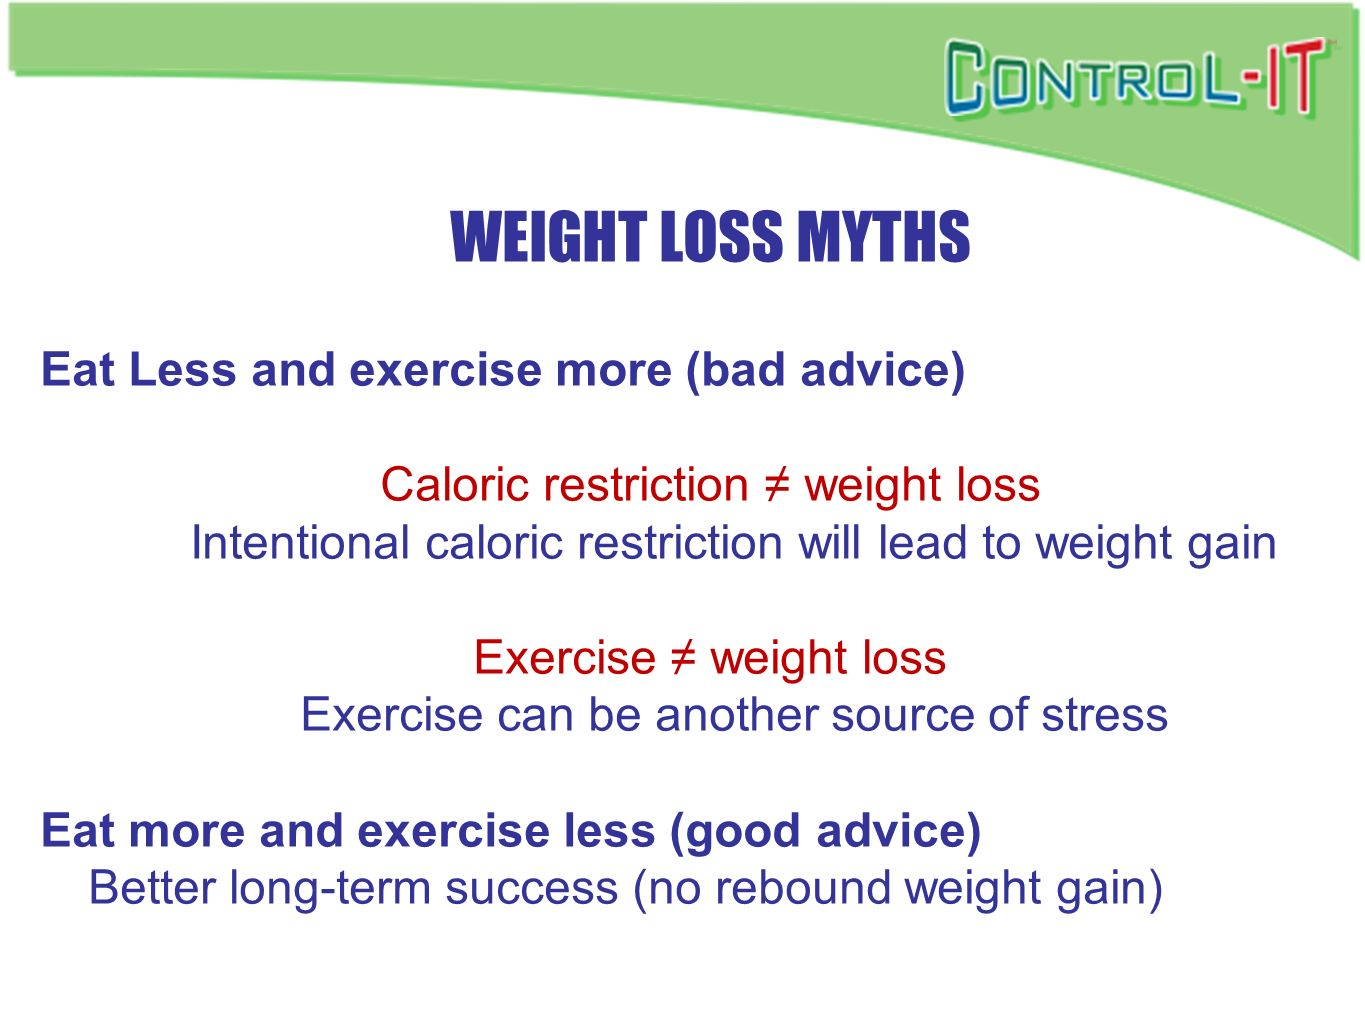 WEIGHT LOSS MYTHS Eat Less and exercise more (bad advice) Caloric restriction weight loss Intentional caloric restriction will lead to weight gain Exe